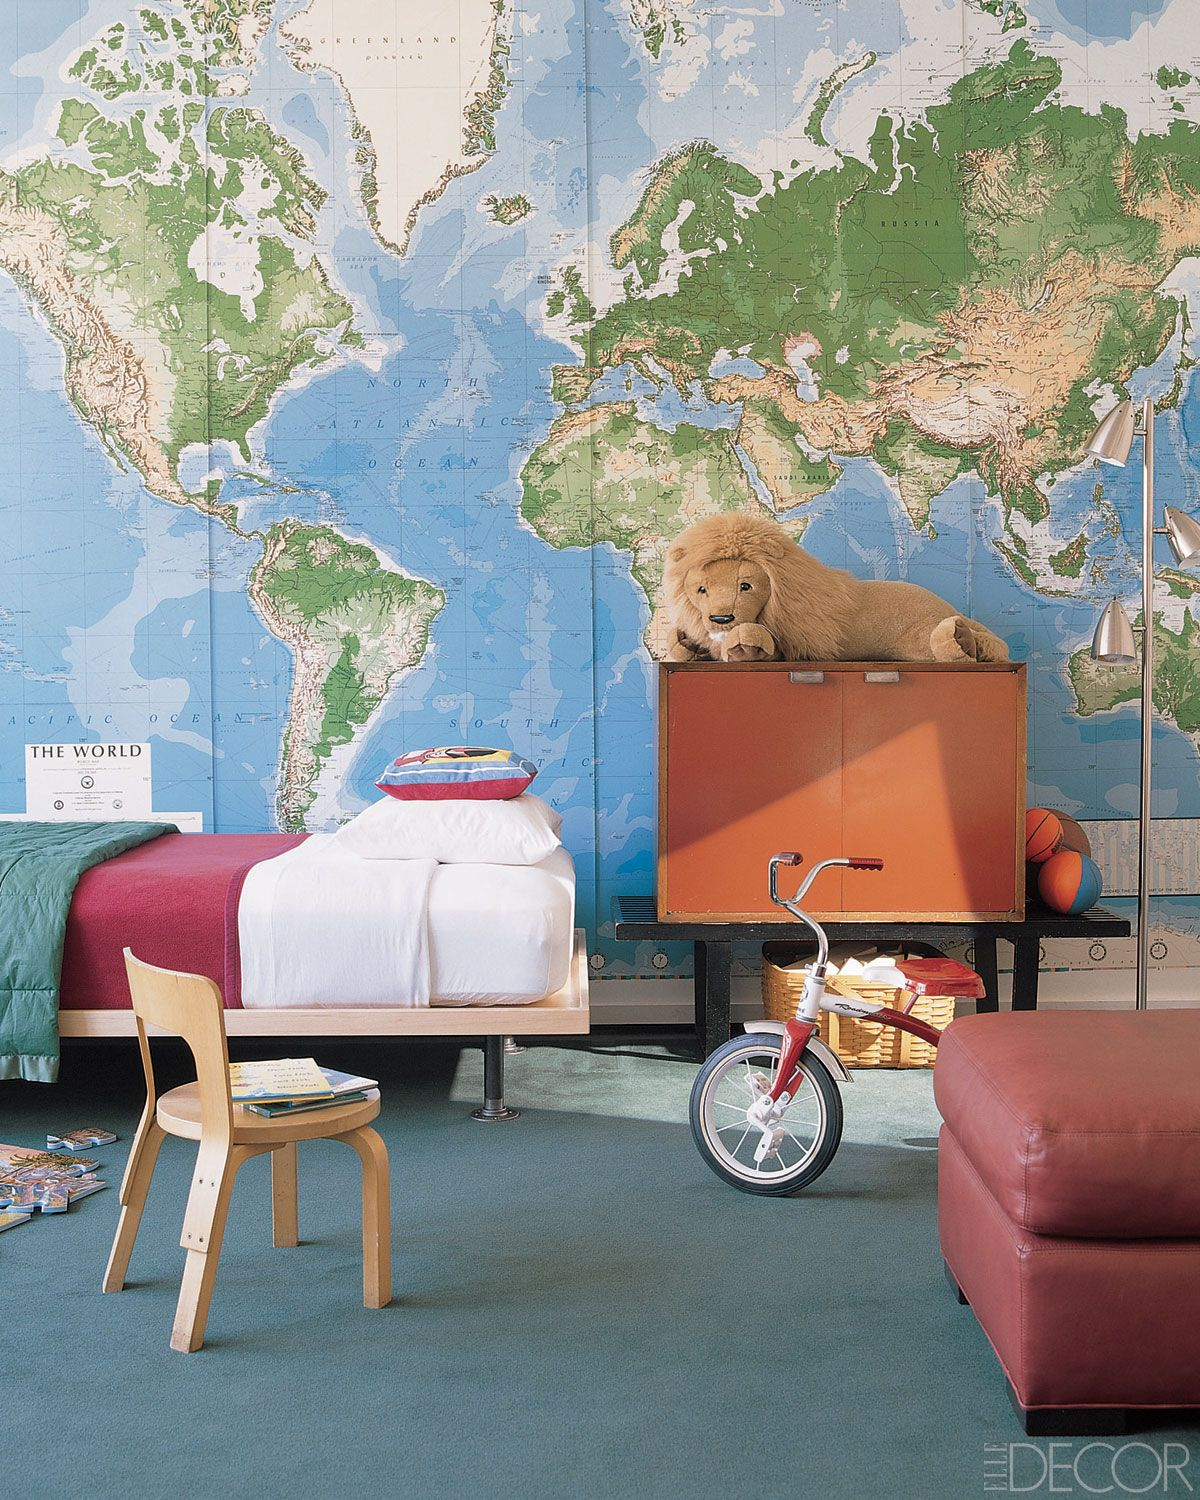 Cool Boys Bedroom Ideas Decorating A Little Boy Room - Boys room with maps